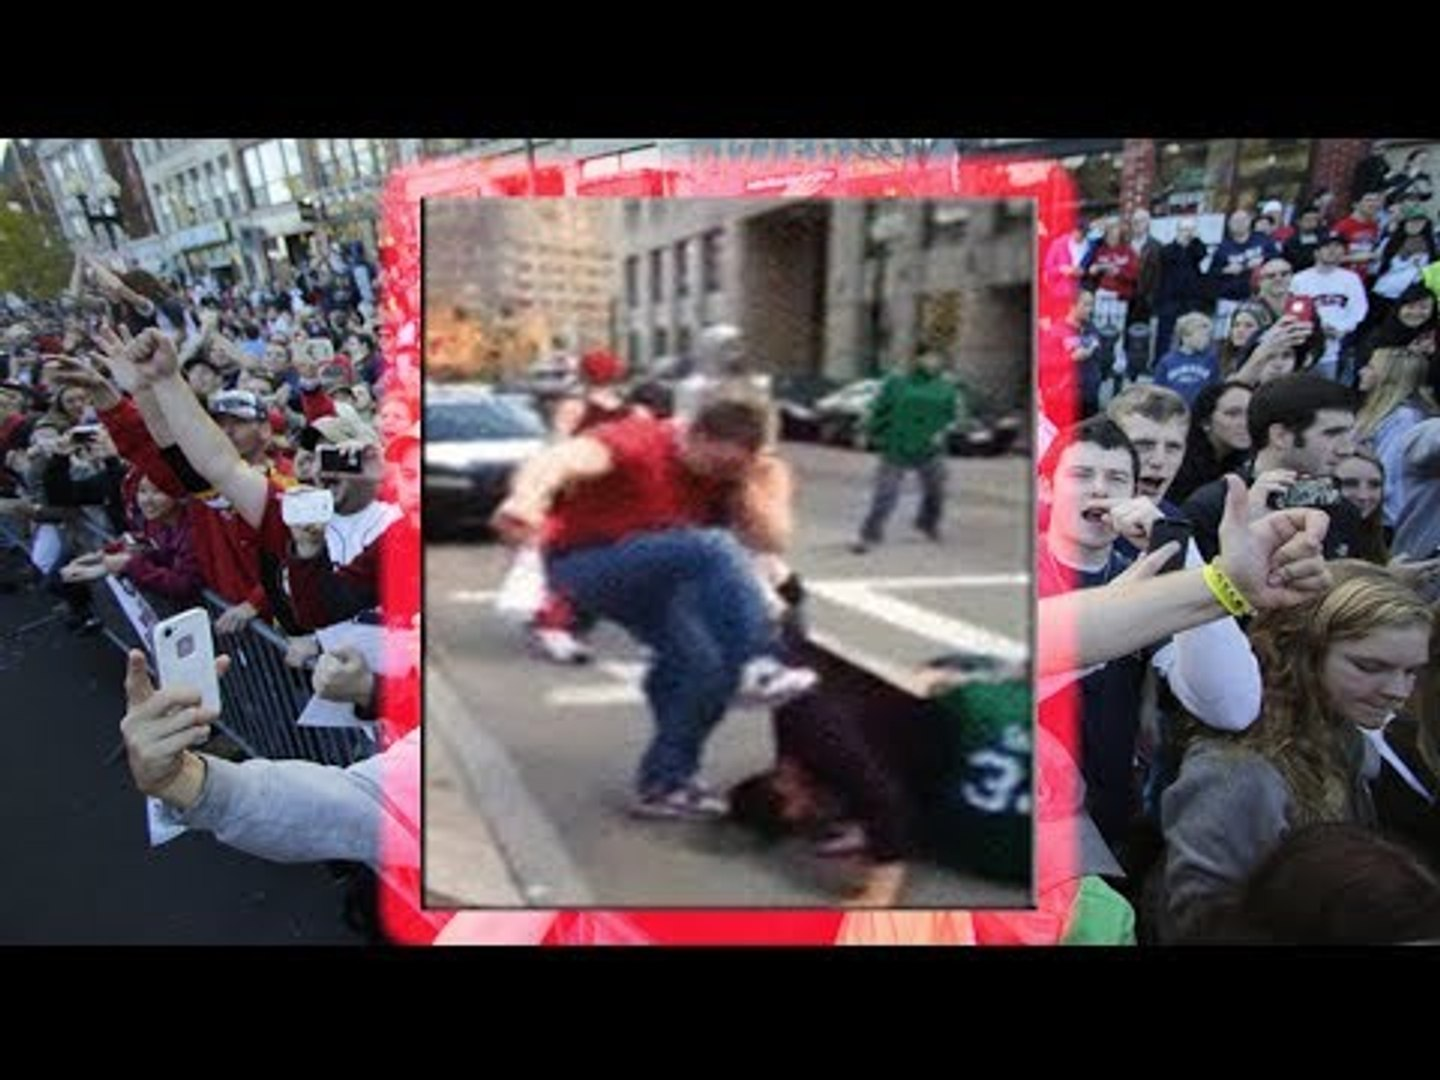 Vicious assault: Two men videoed curb-stomping bystanders at Red Sox  victory parade